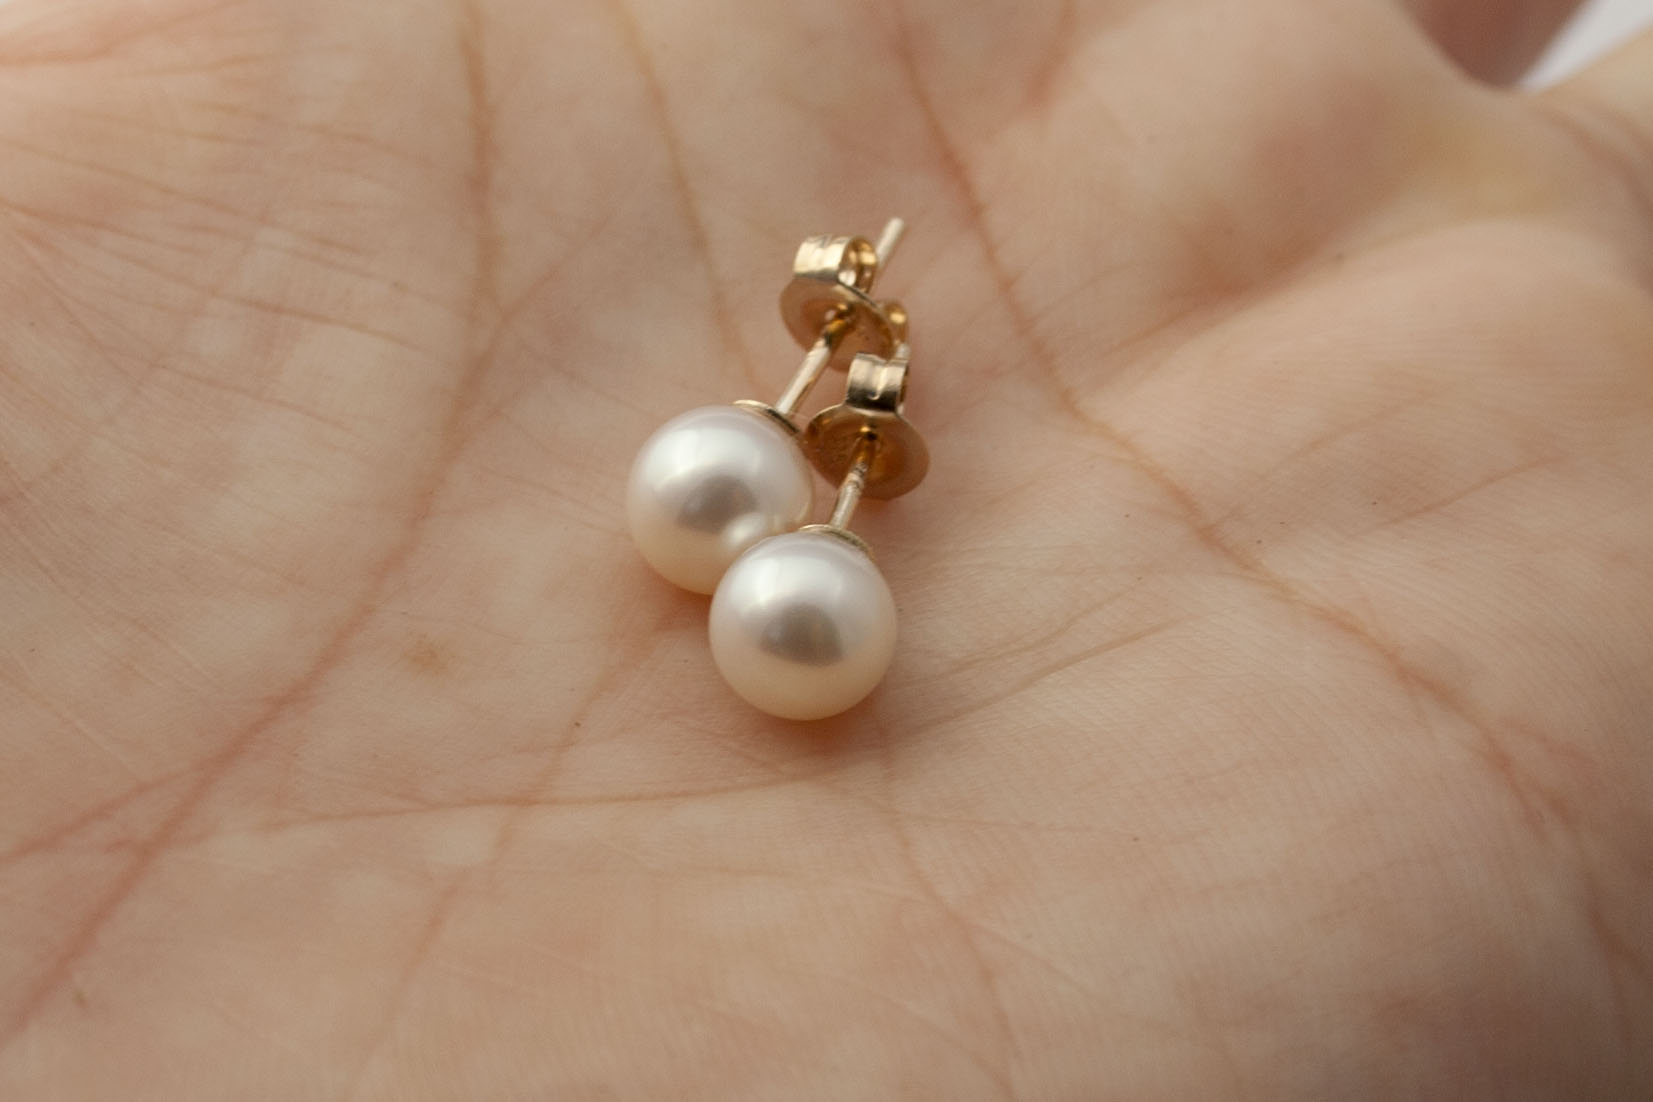 Yellow Gold Pearl Earrings 10mm Freshwater Pearls Stud Studs 9 Carat